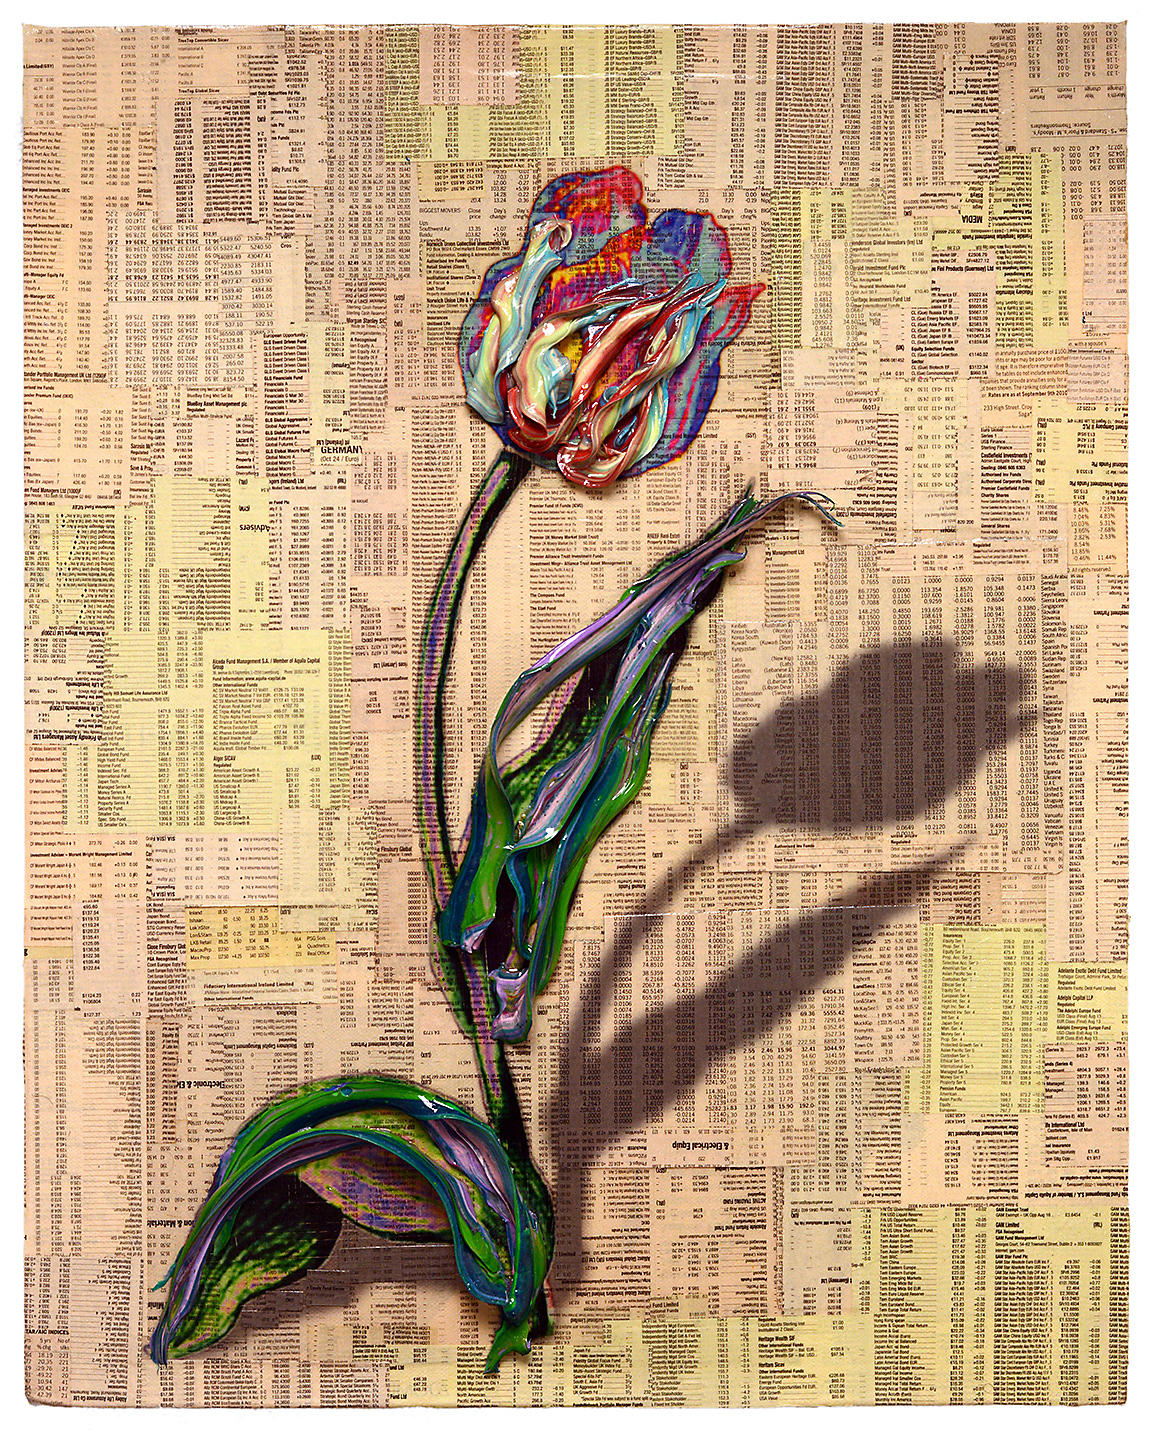 UNNAMED TULIP 24 (TULIPBOOK), 2013